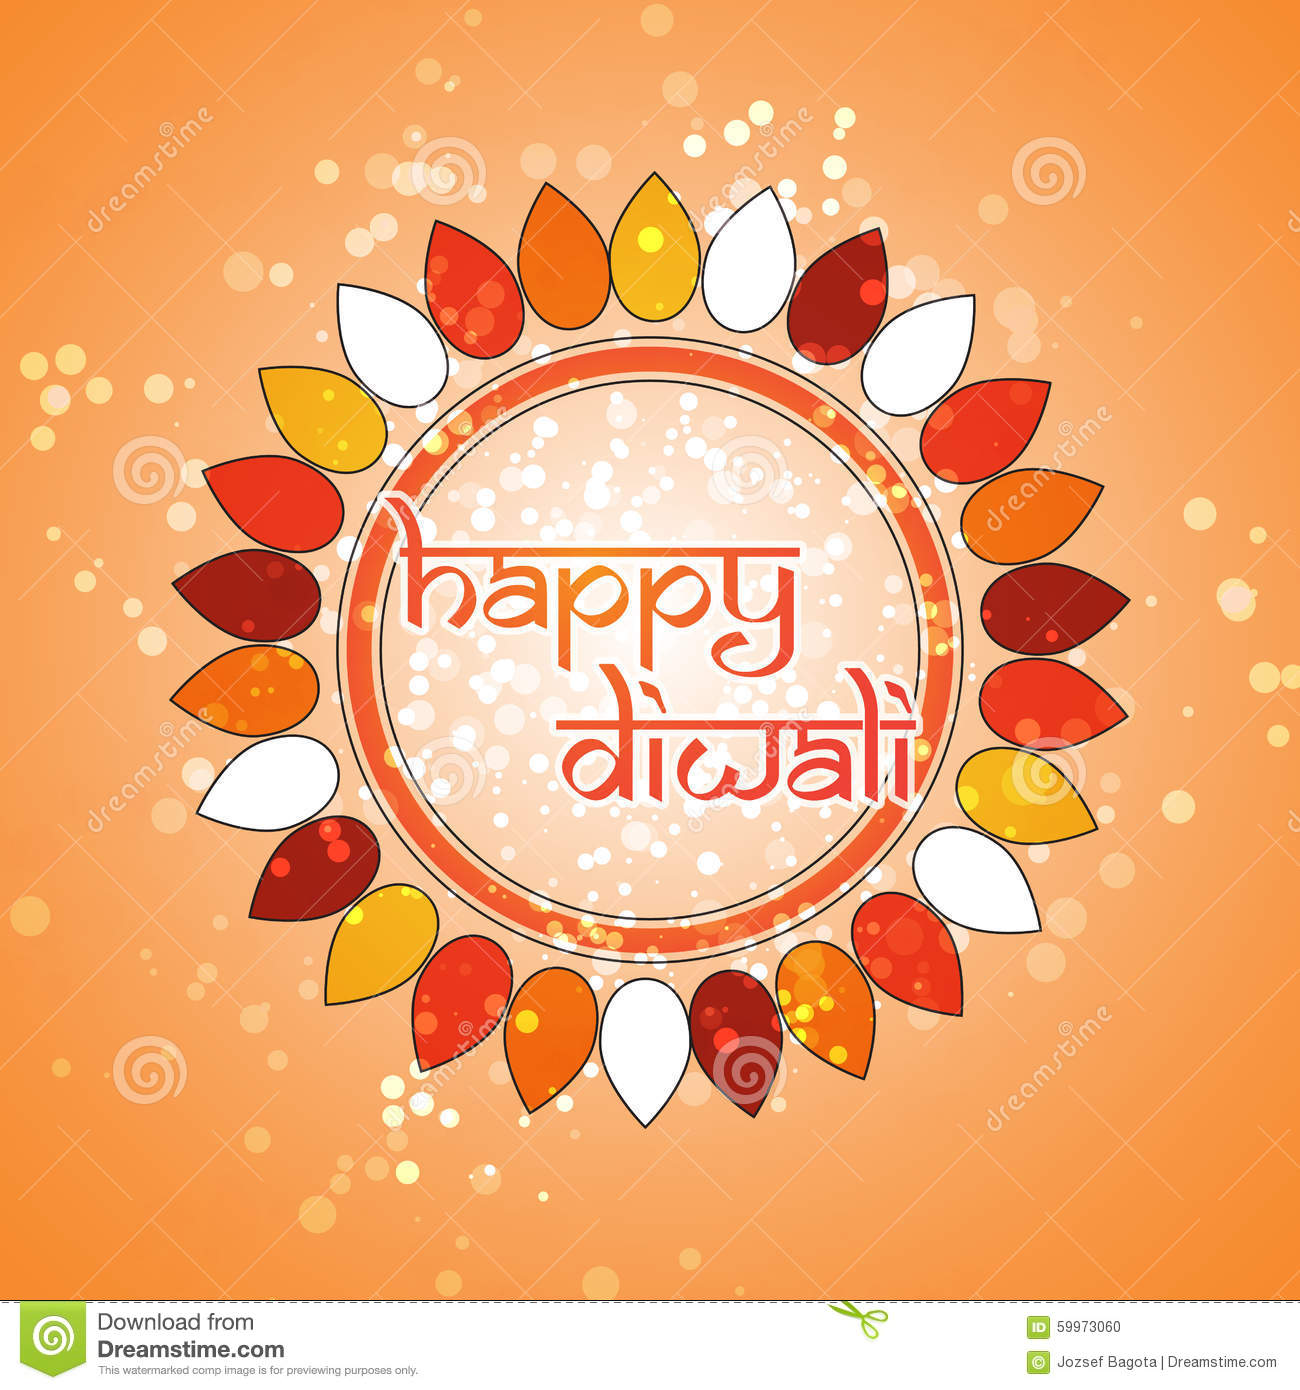 Happy Diwali Card Vector Background Illustration Stock